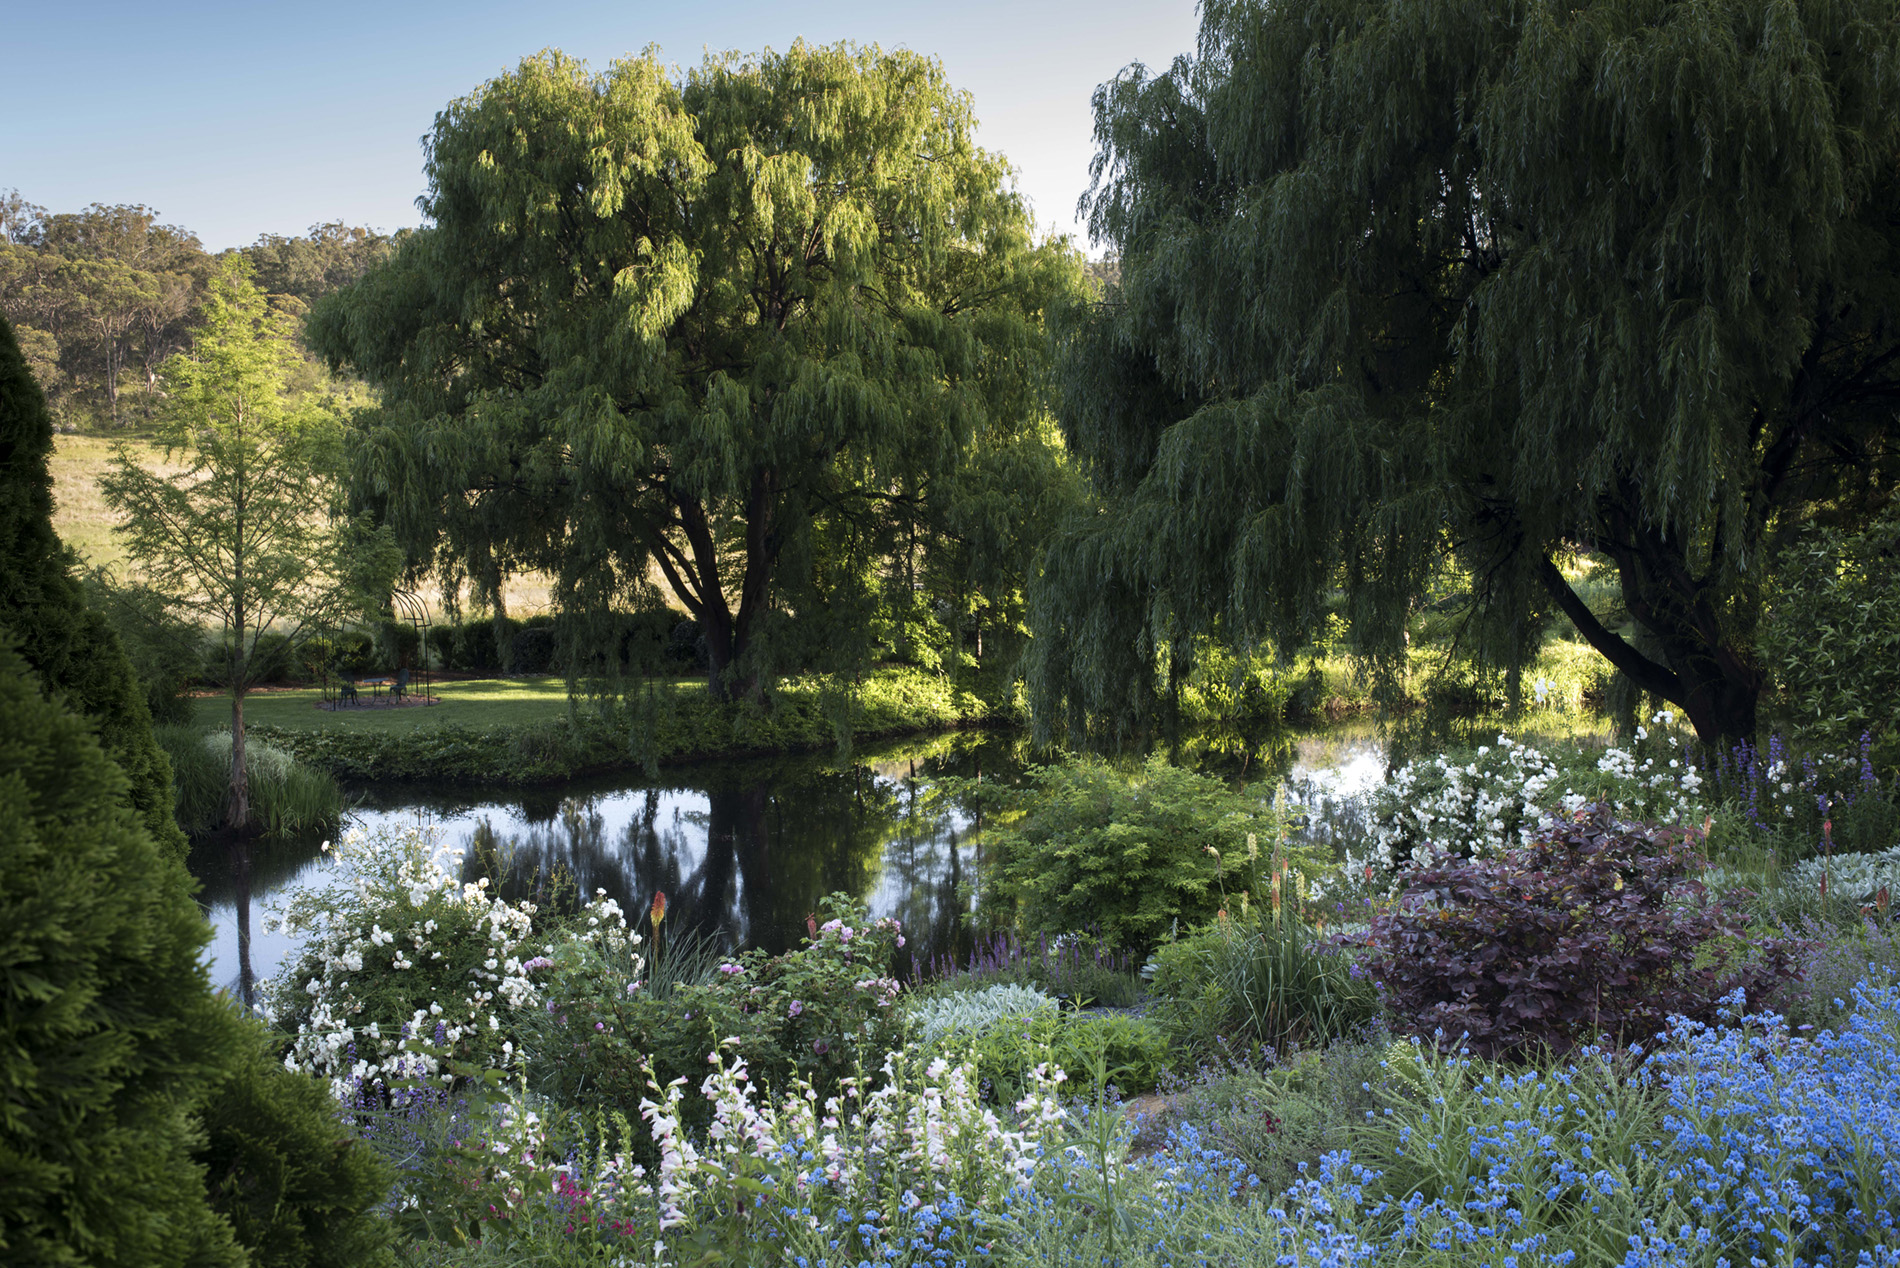 A photograph of a garden. Flowers and a lake sit in the foreground, with lush green grass backing onto a dry paddock in the background.